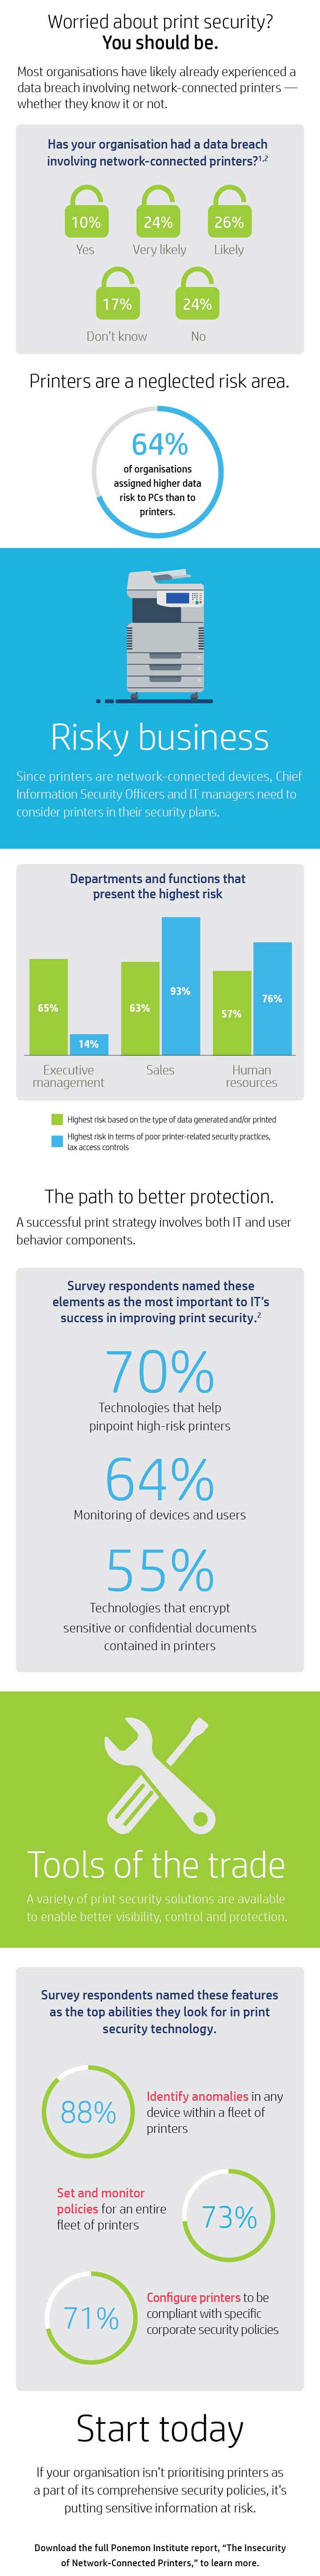 Printer-Security_Infographic_breach_mid.jpg